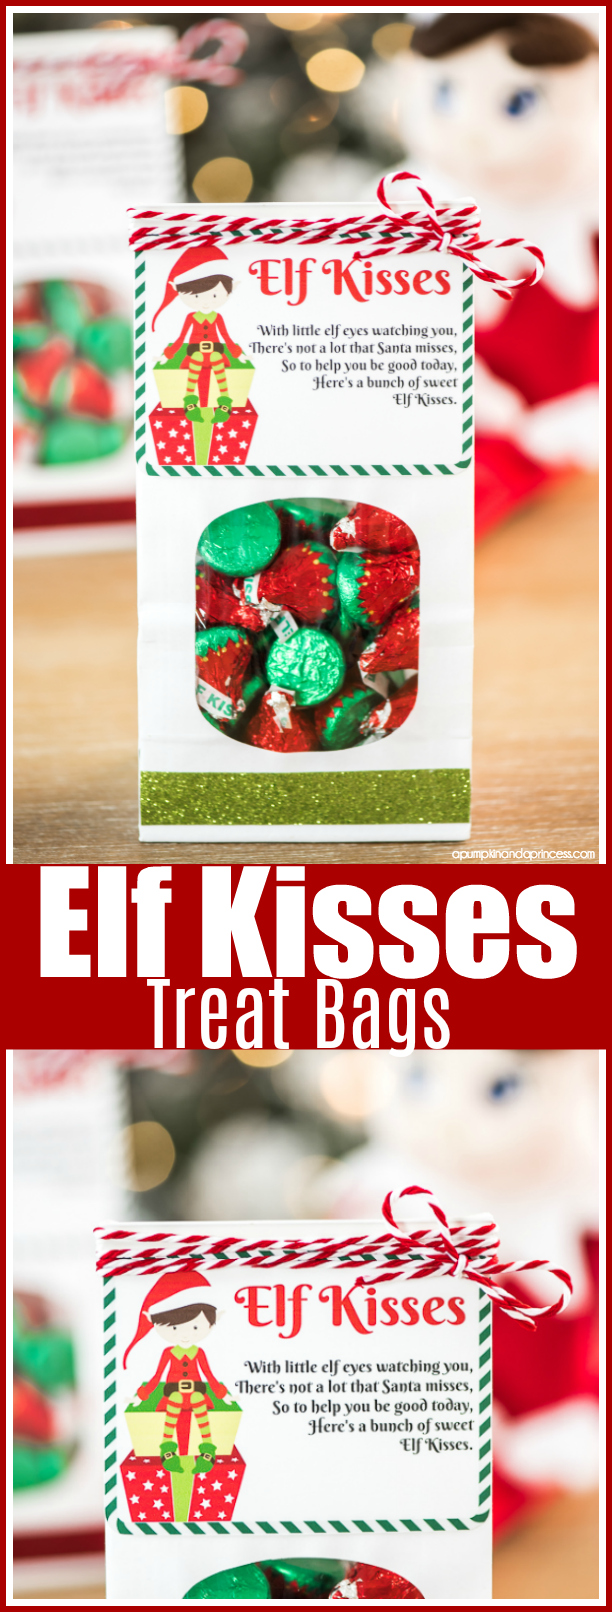 Elf Kisses Treat Bags – Elf Kisses Printable Tag Quote & mini treat bags for your little ones to receive from their elf.